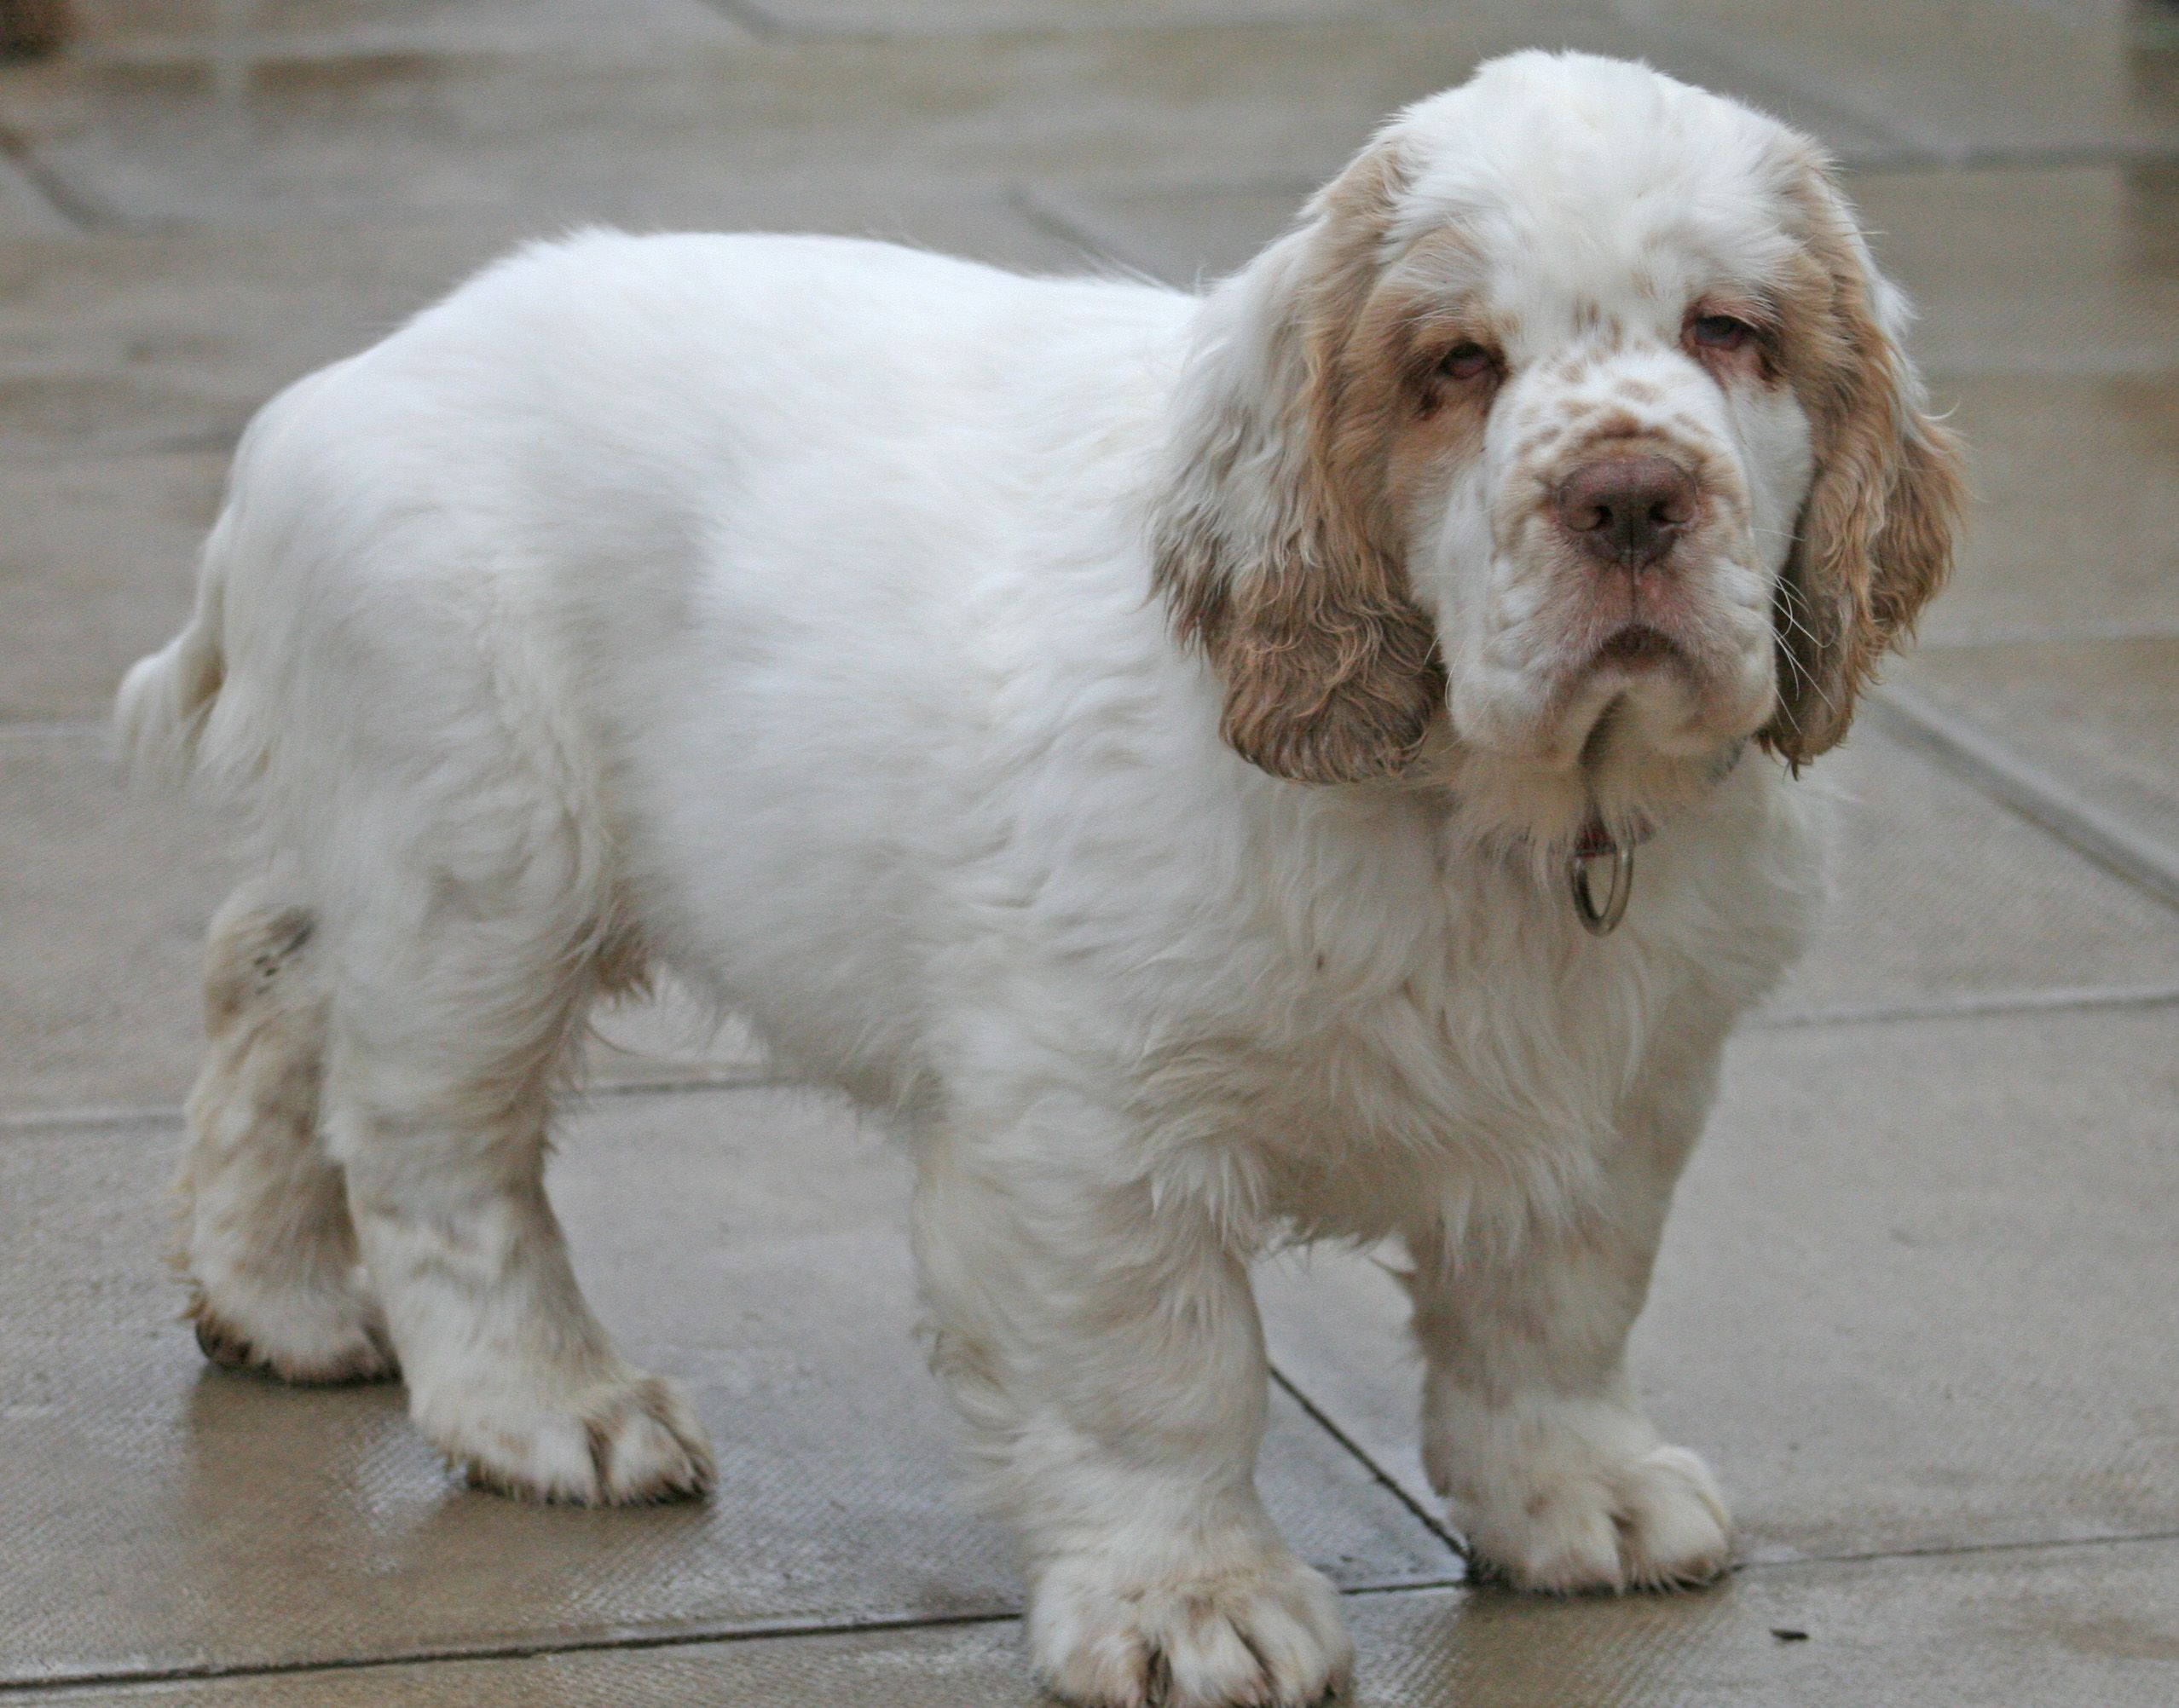 Clumbers, like many breeds, may have hip dysplasia and